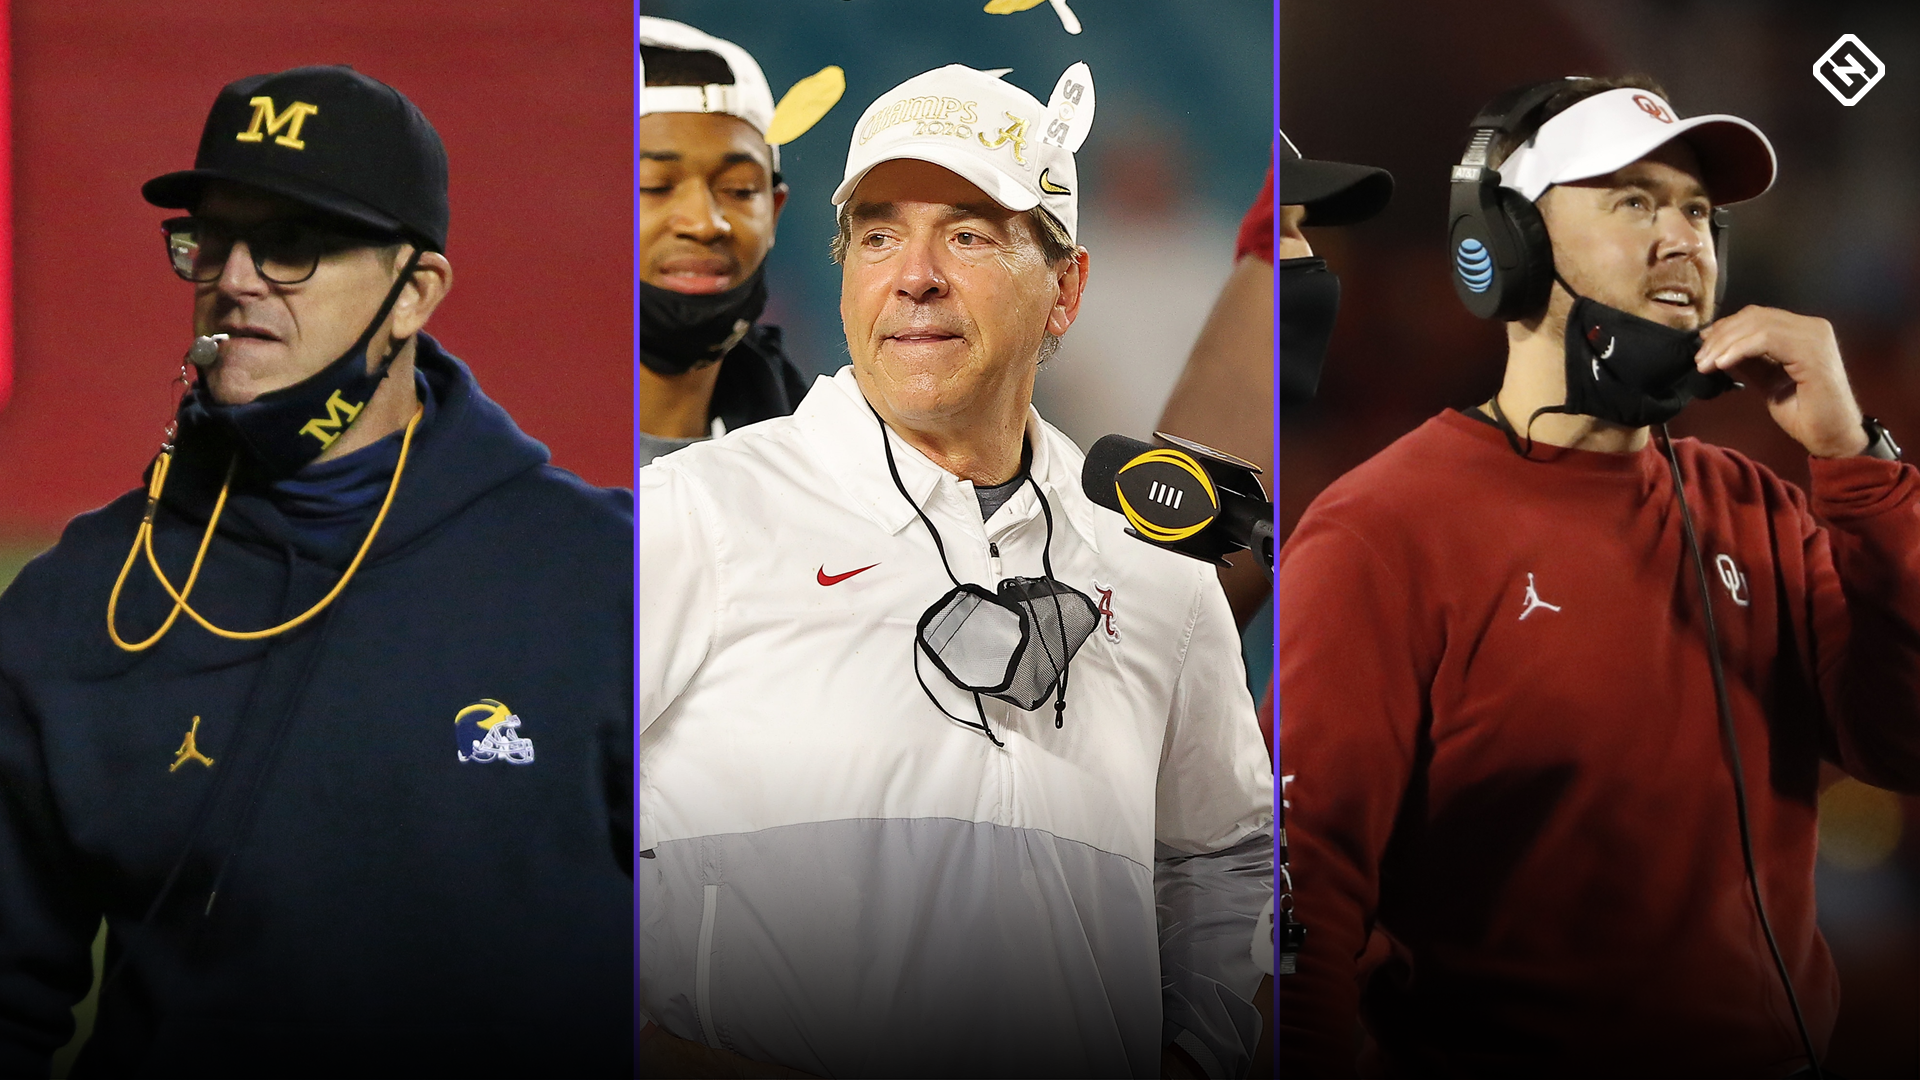 harbaugh-saban-riley-042021-getty-ftr.png